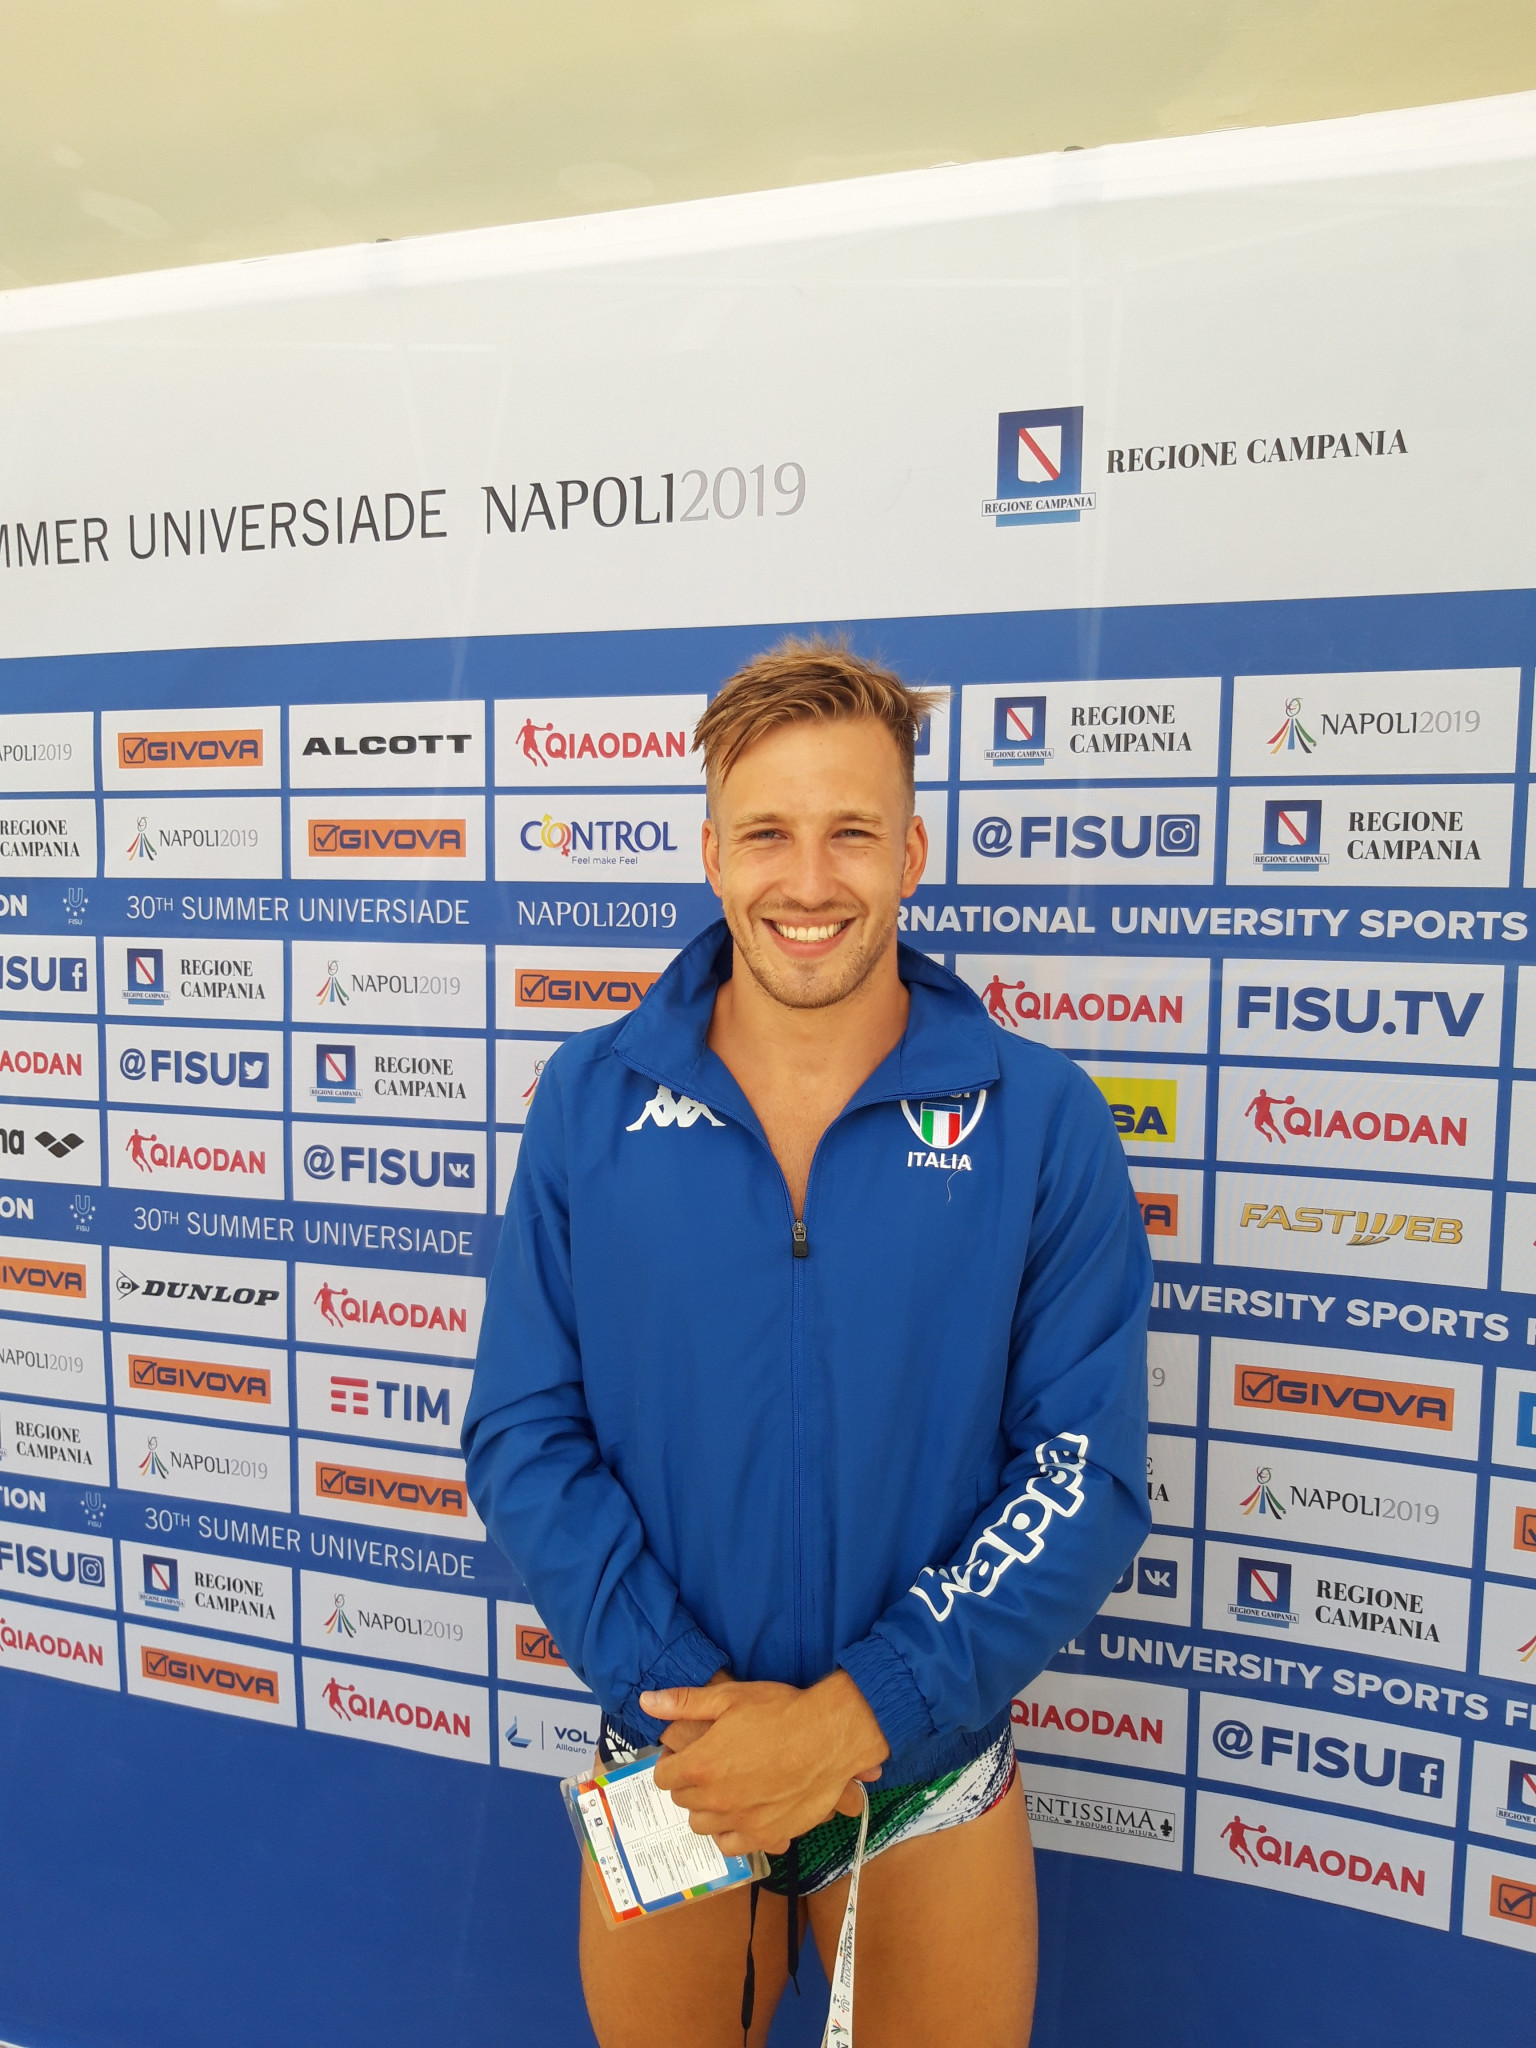 Gabriele Auber of Italy took bronze in the men's one metre springboard final at Naples 2019 ©ITG